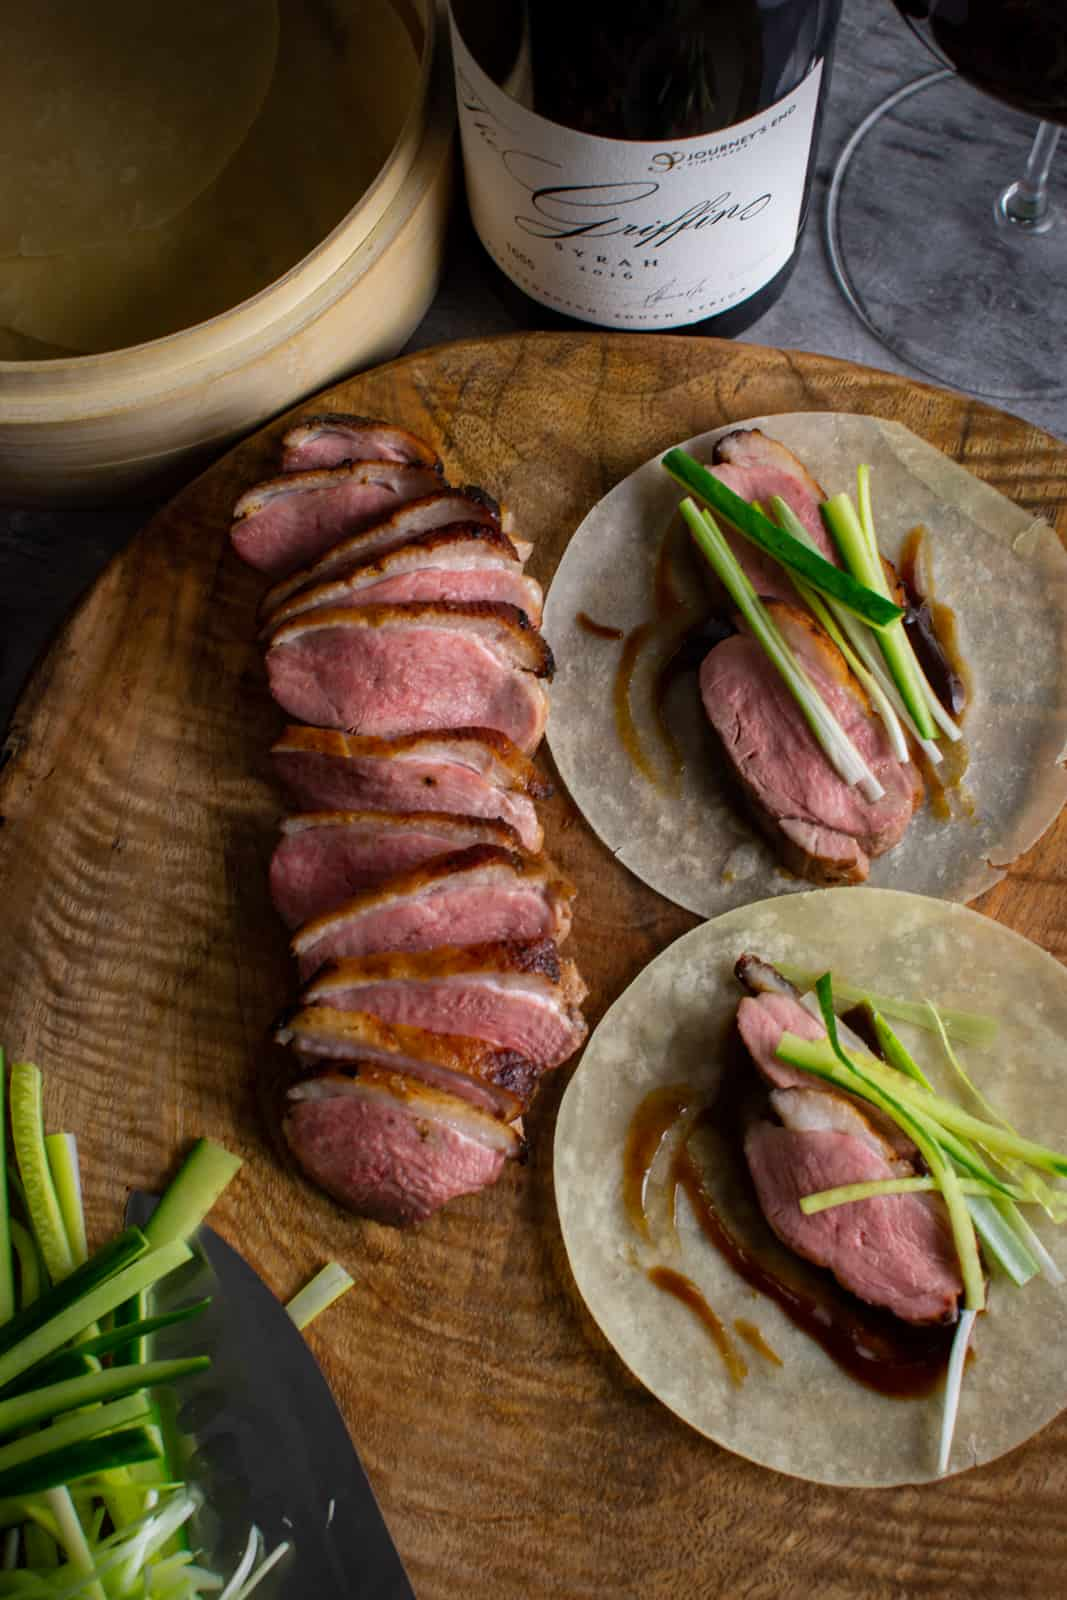 peking duck pancakes on wooden chopping board, cooked duck breast next to them with red wine too